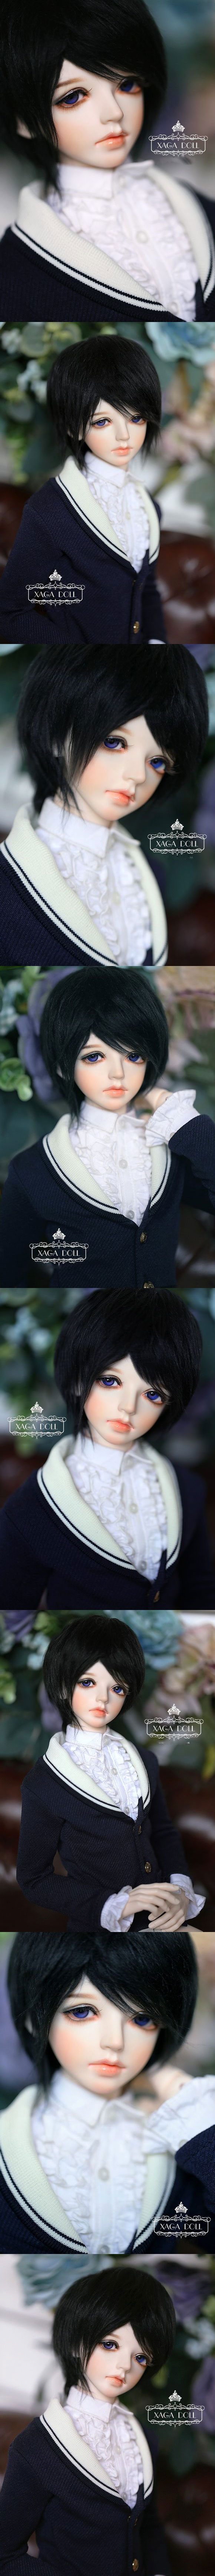 BJD Cyril Boy 65cm Ball-Jointed Doll